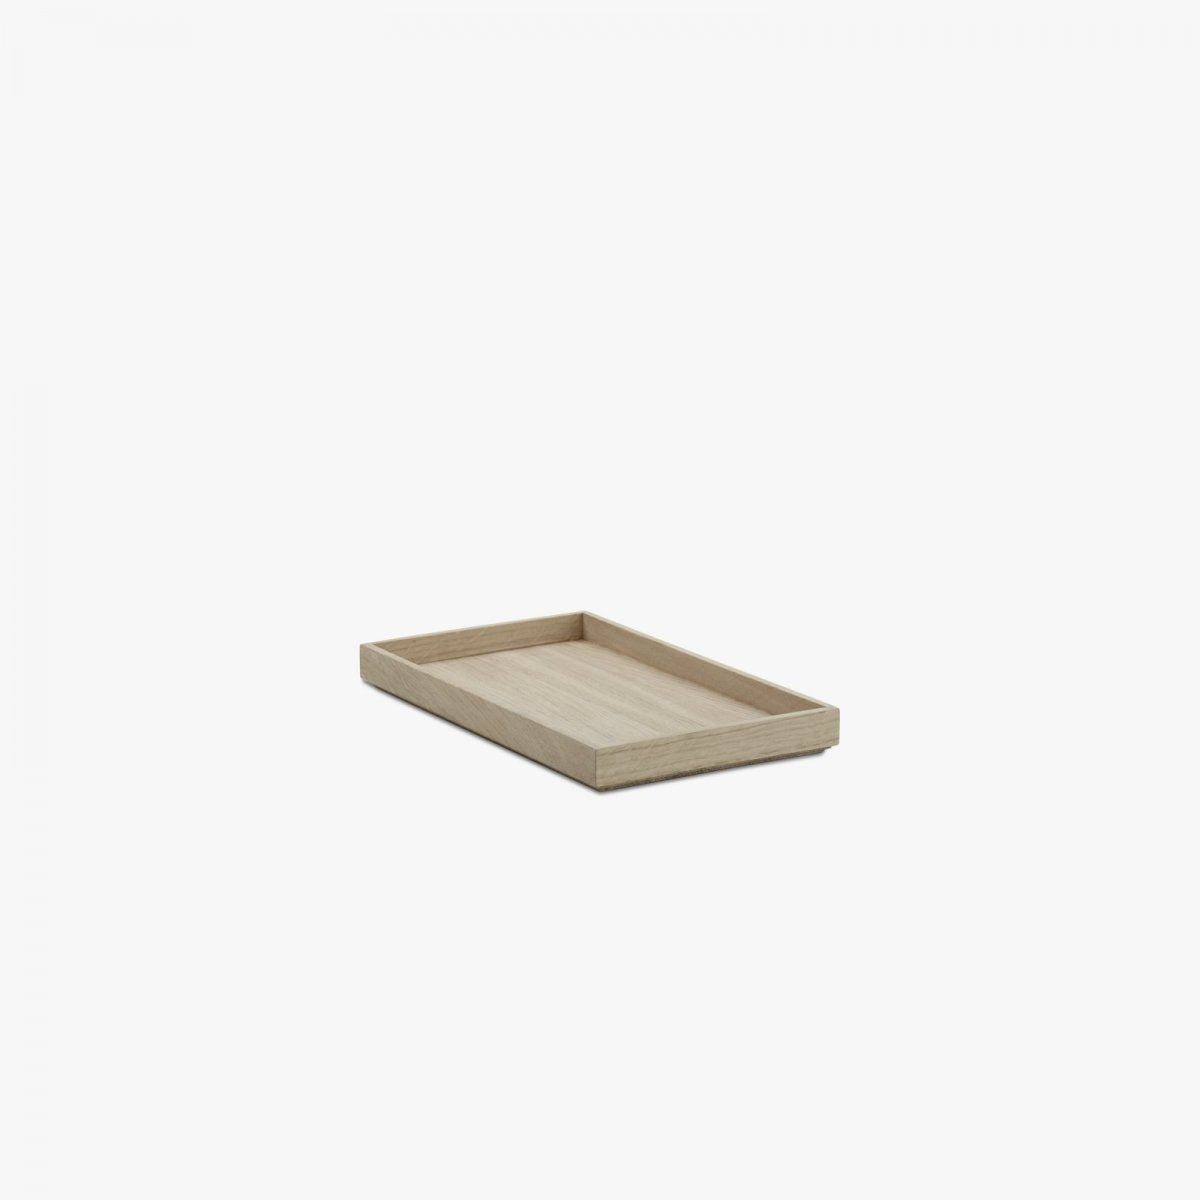 Nomad Tray, small.